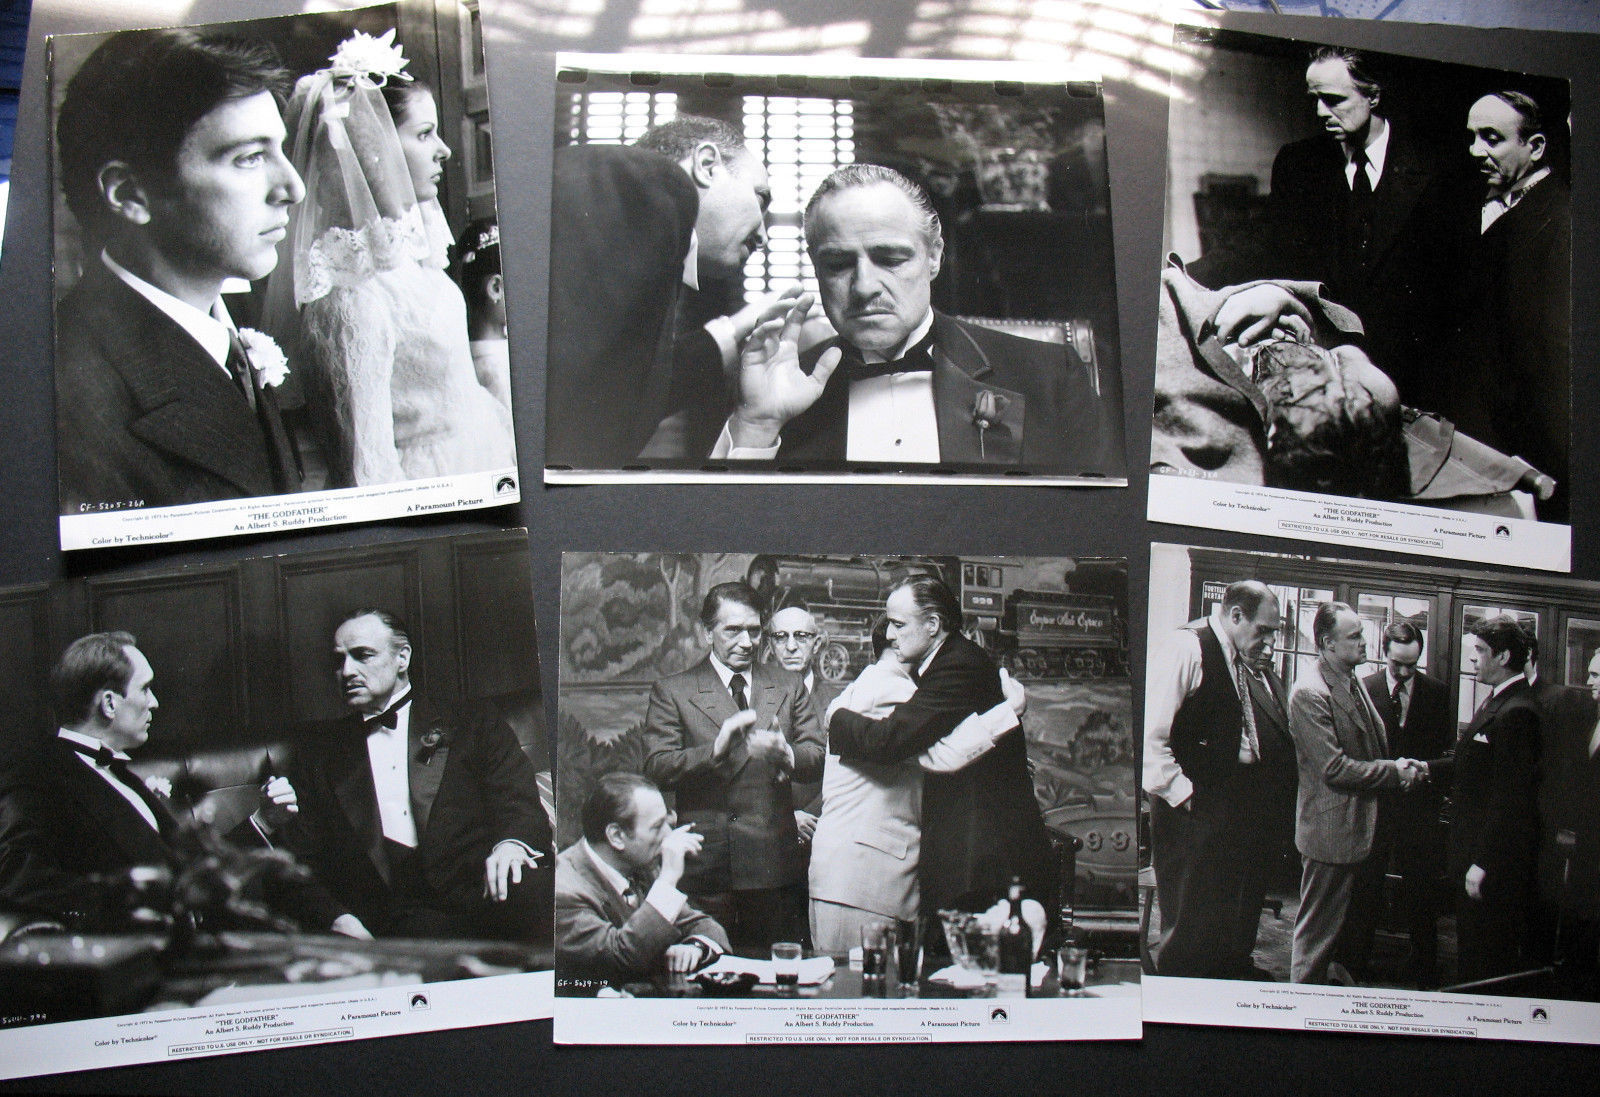 FRANCIS FORD COPPOLA (THE GODFATHER) ORIGINAL PHOTO LOT # 2